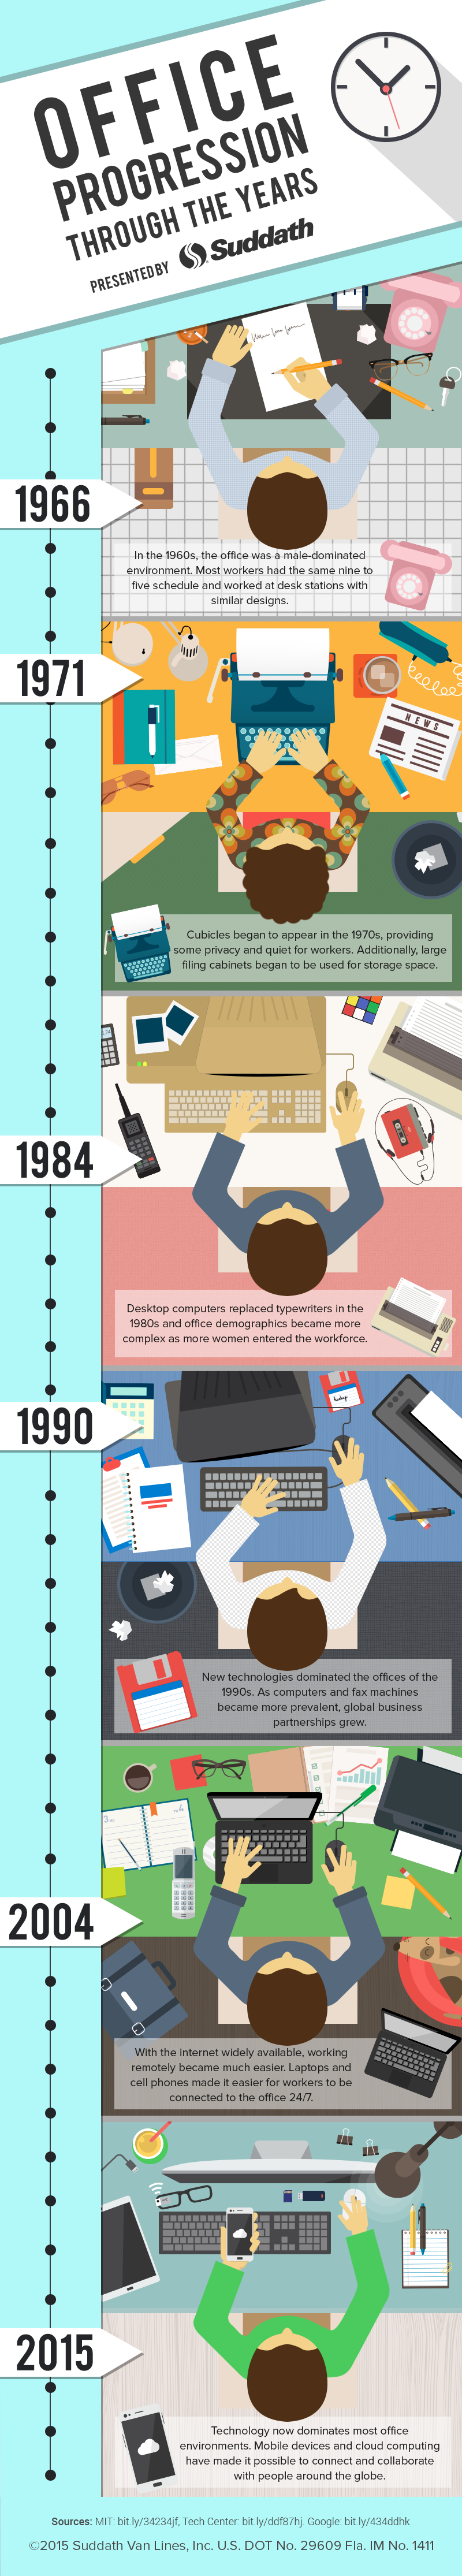 Office Technology Through the Years